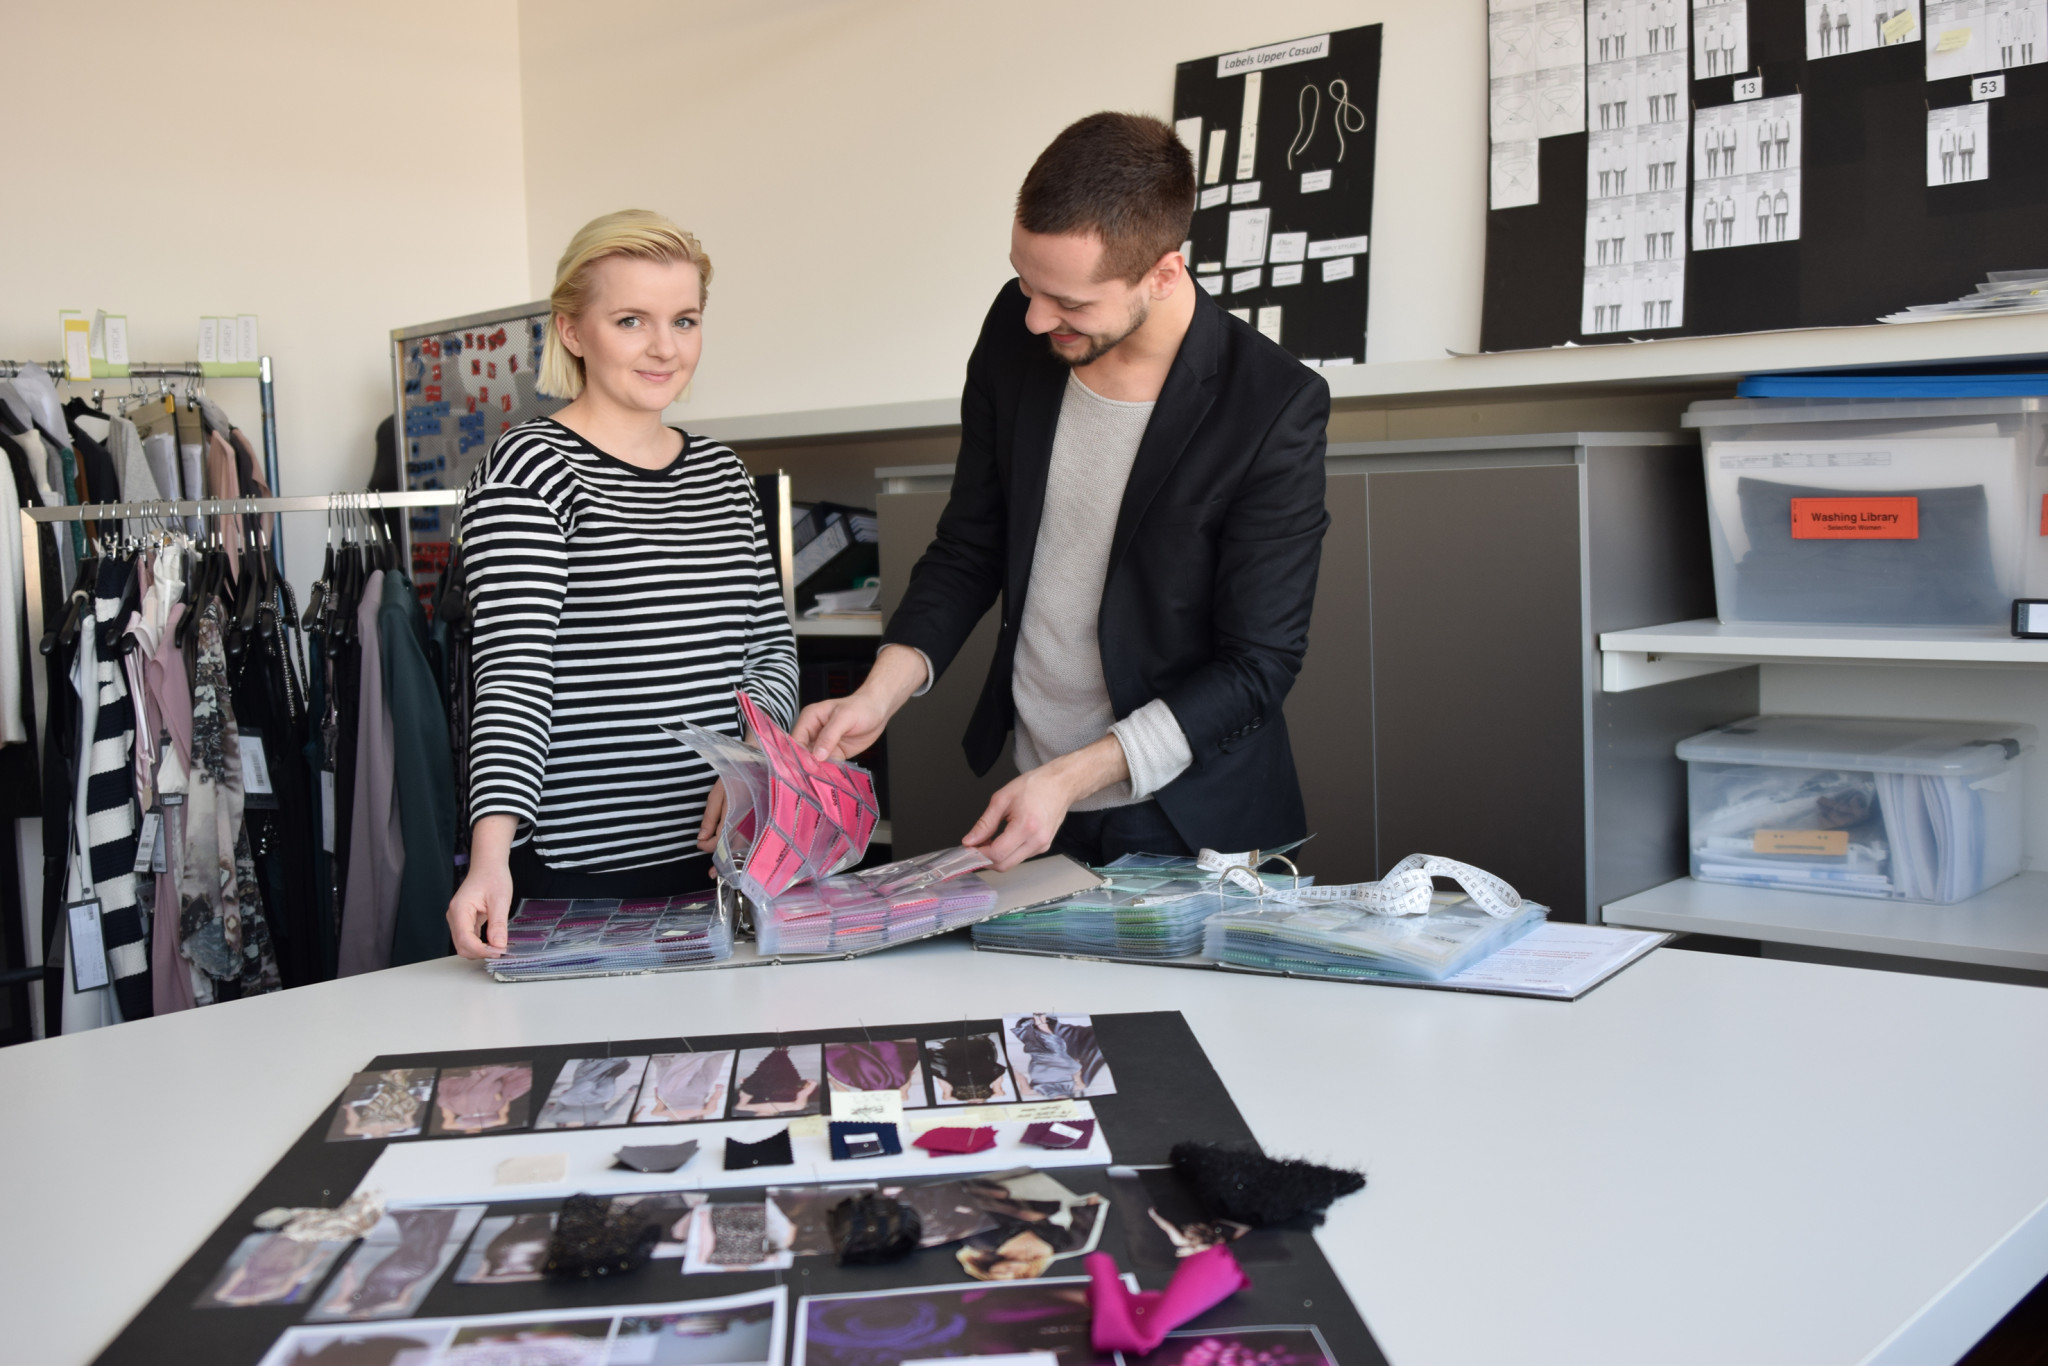 Beim s oliver praktikum mittendrin im fashion business for Praktikum design frankfurt